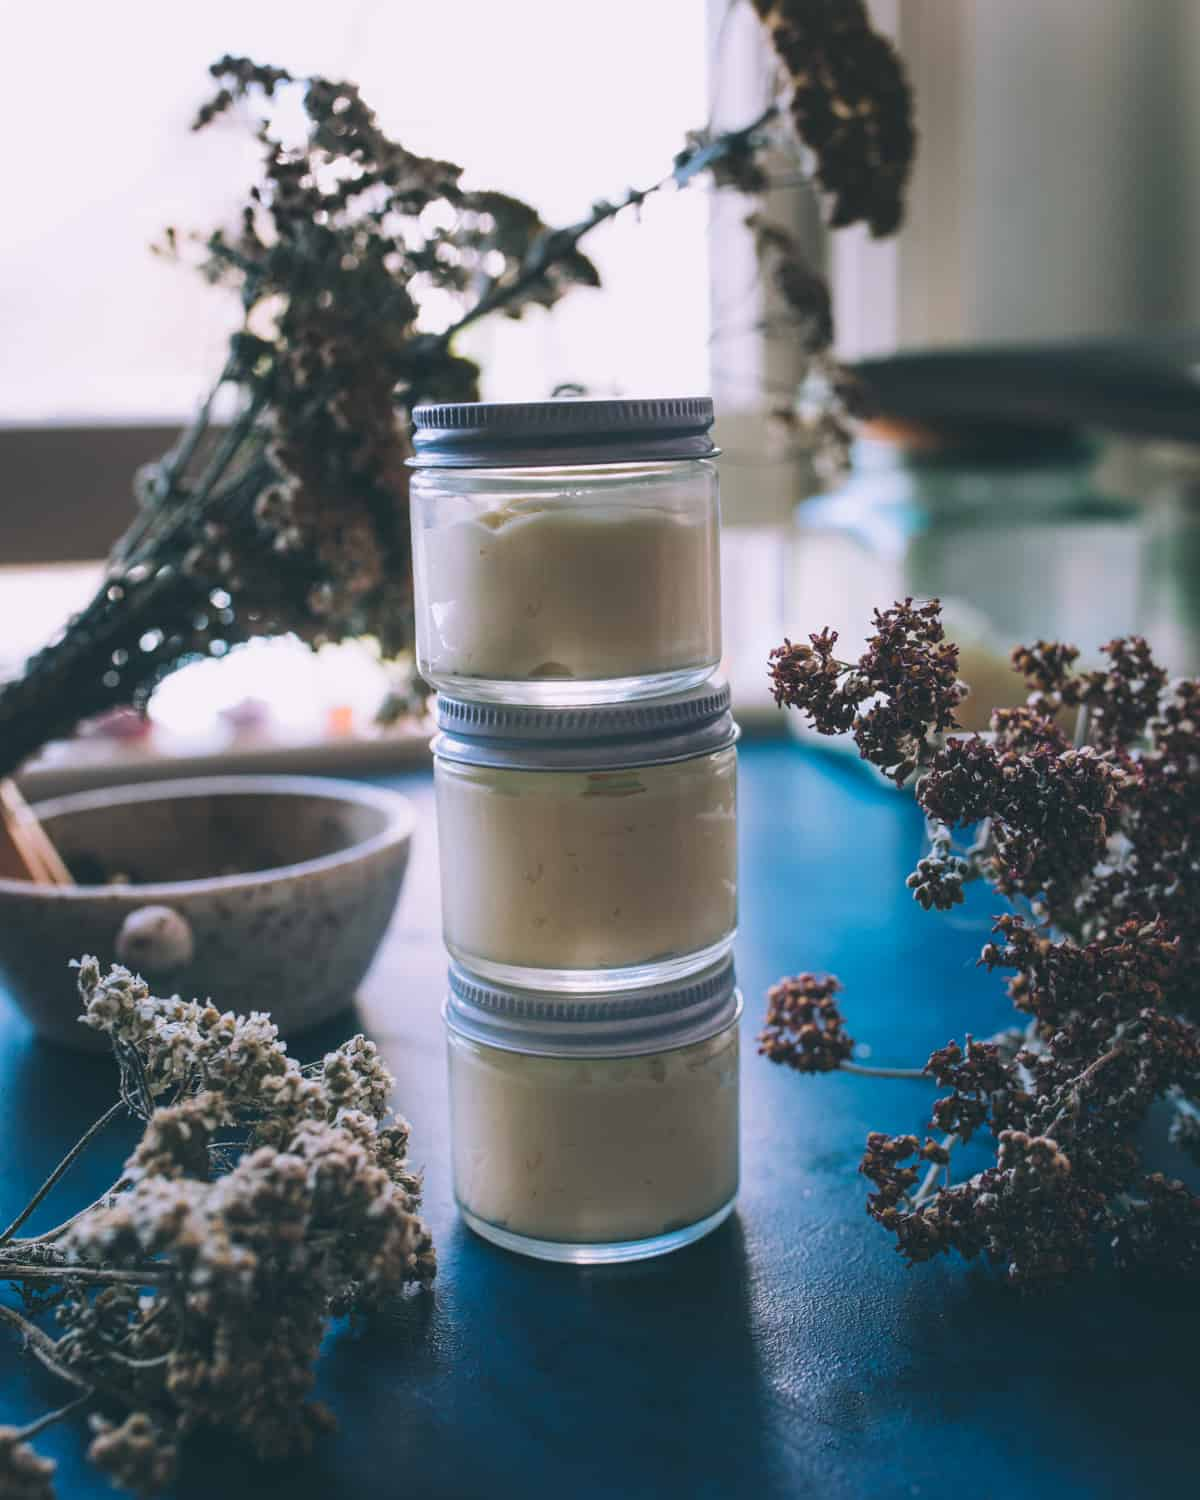 A stack of 3 small jars with lids on, filled with finished arnica and yarrow cream. Sitting on a dark blue counter top with dried yarrow flowers and a mortar and pestle in the background.